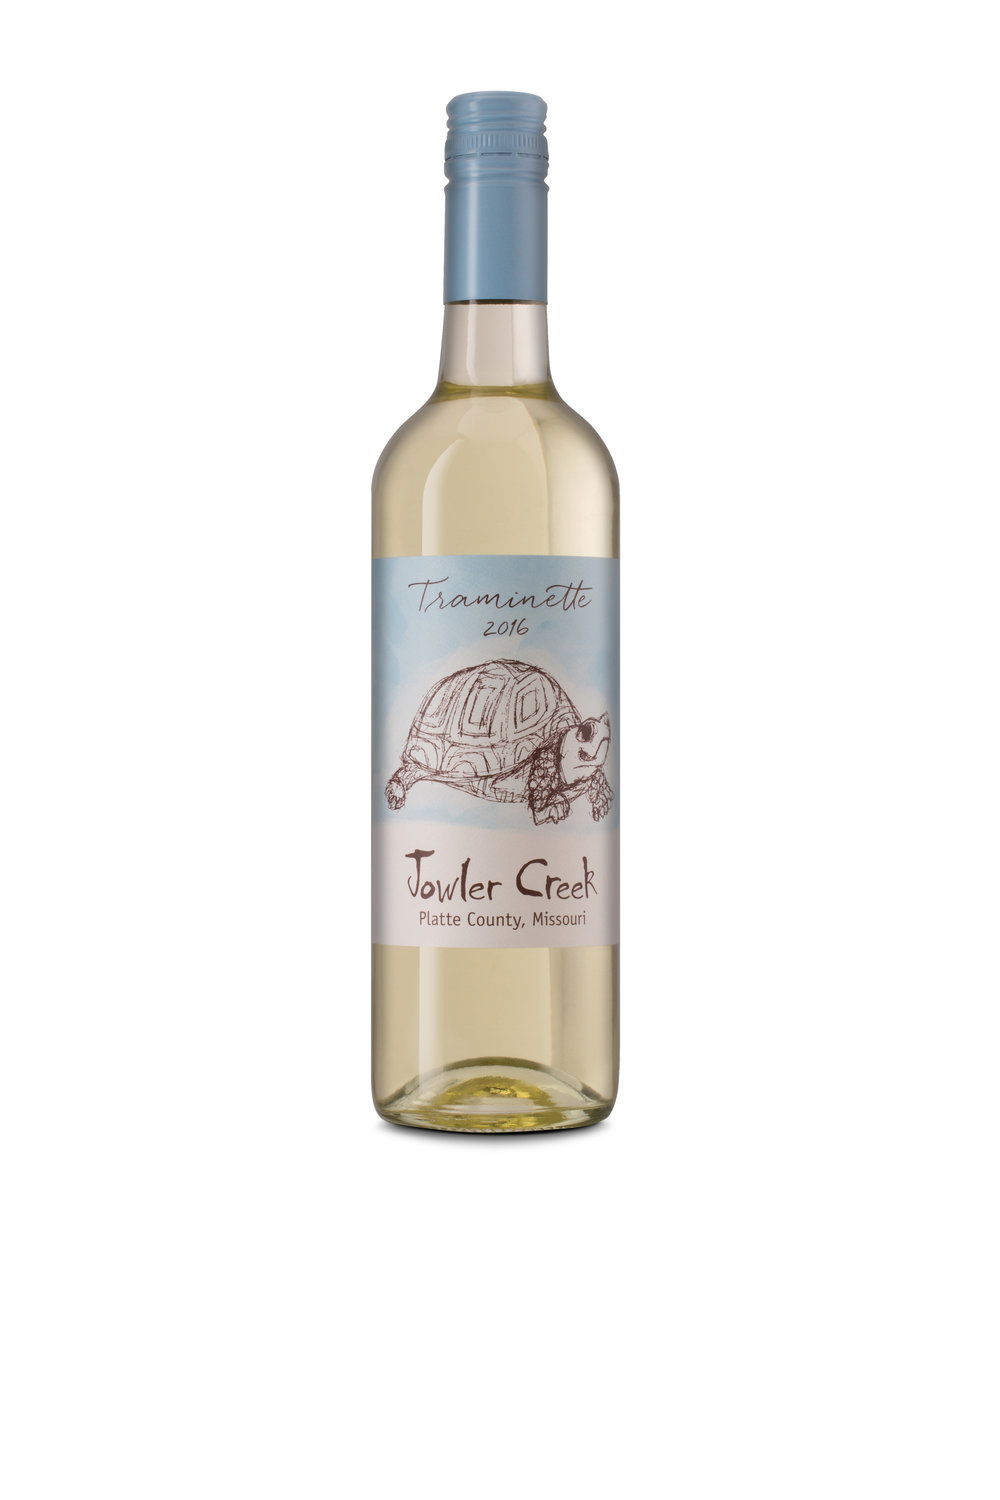 Jowler Creek_Traminette_013.jpg